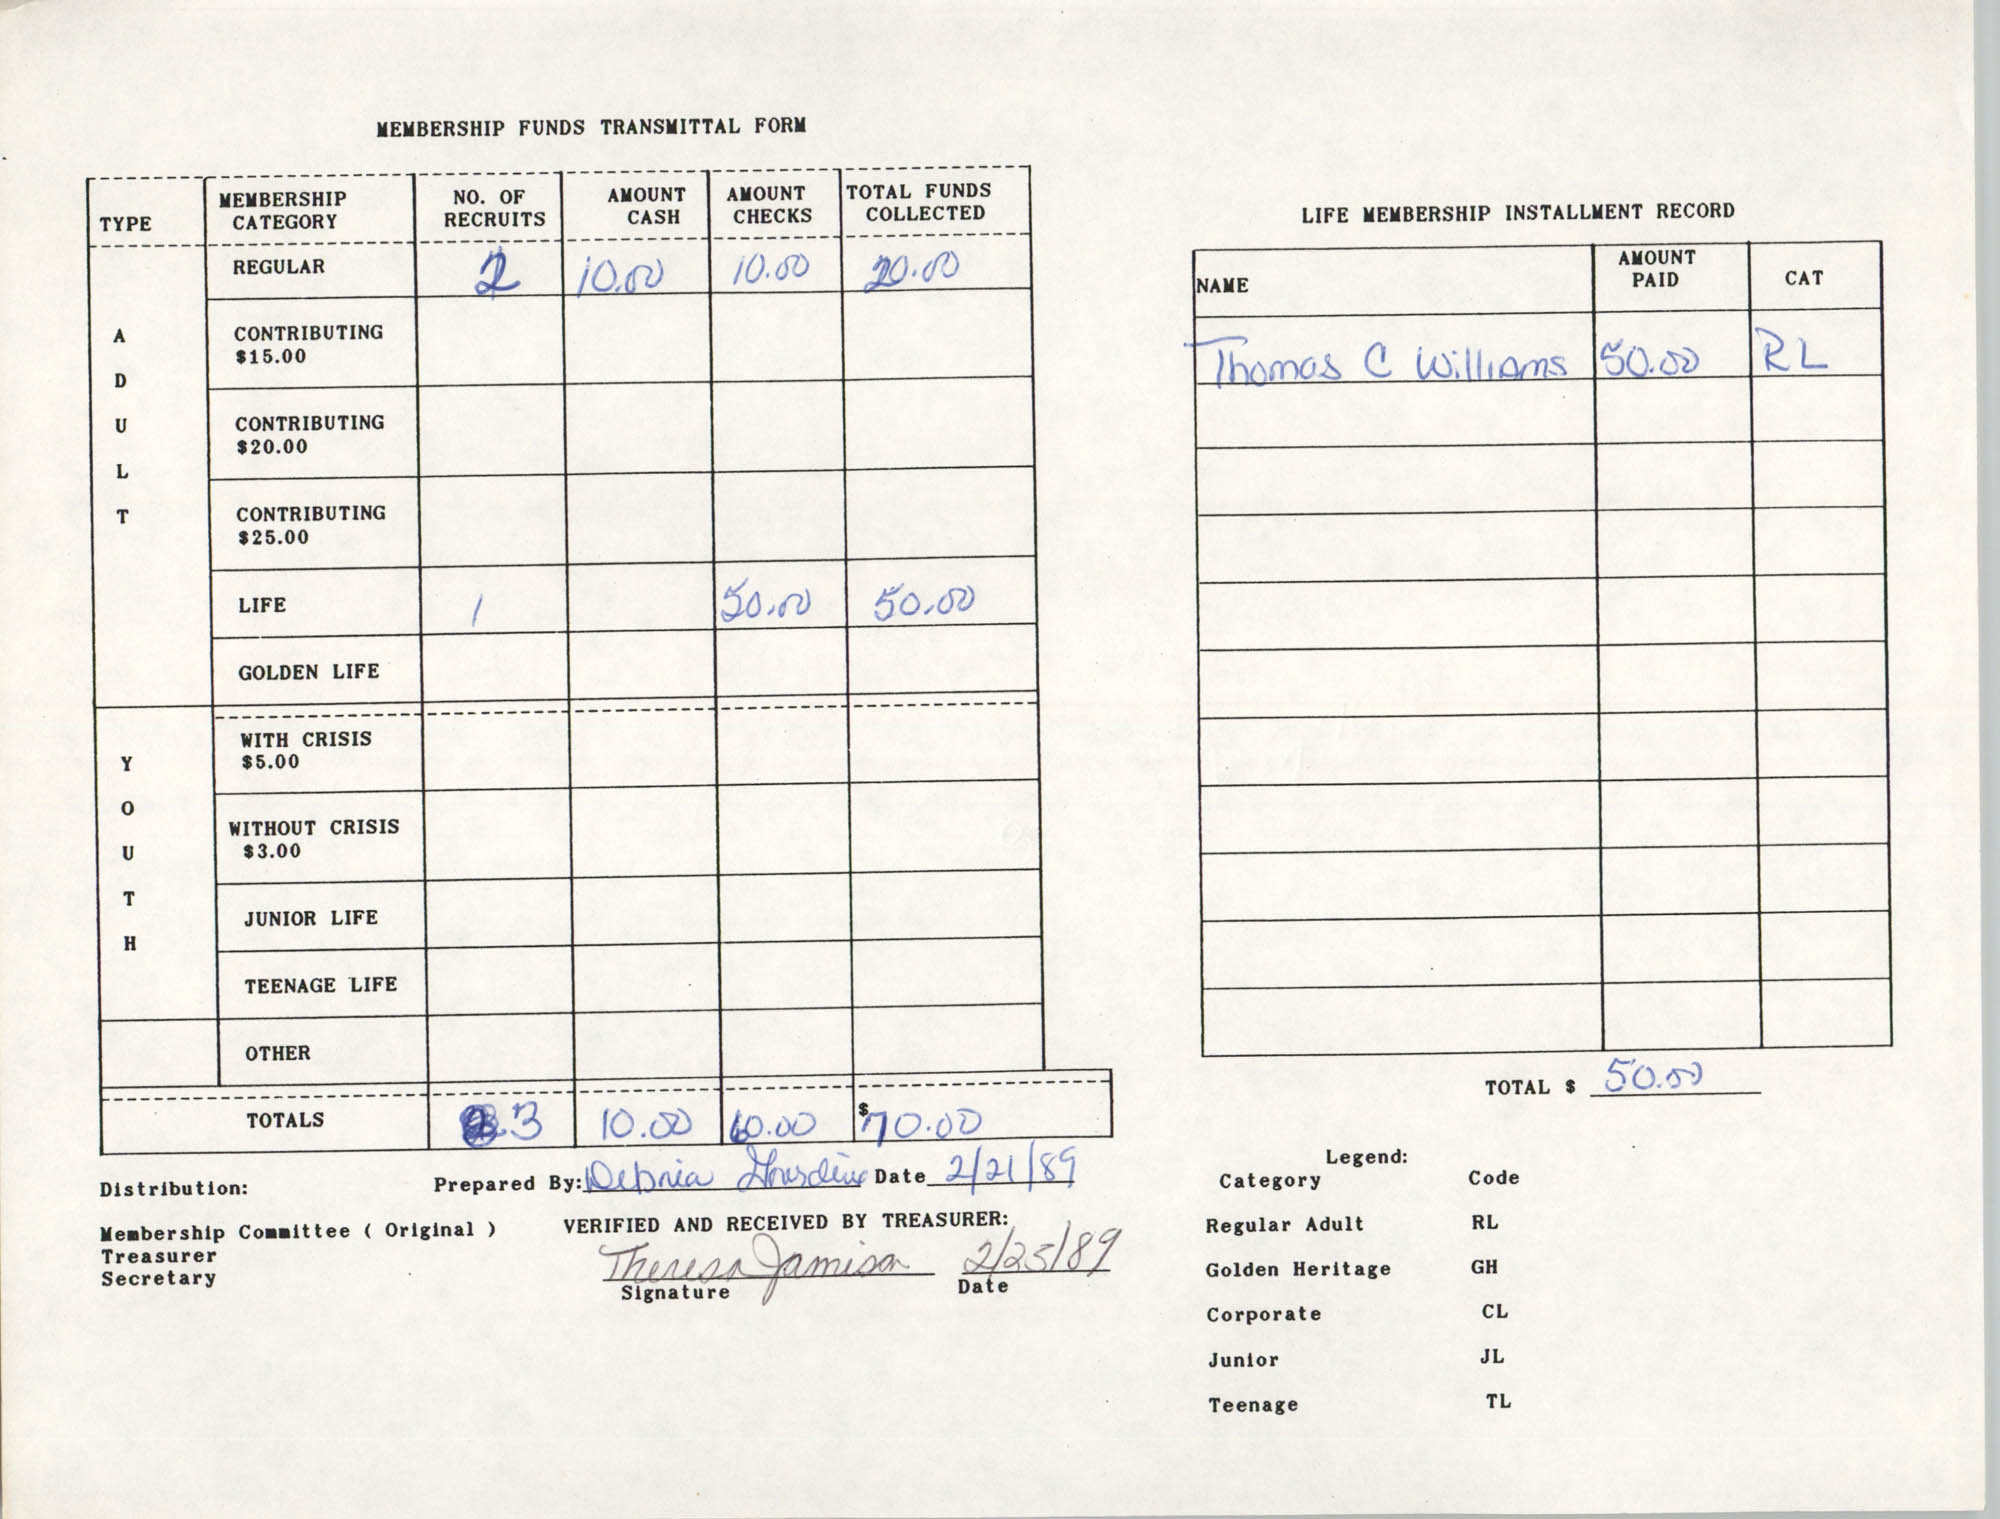 Charleston Branch of the NAACP Funds Transmittal Forms, February 1989, Page 4